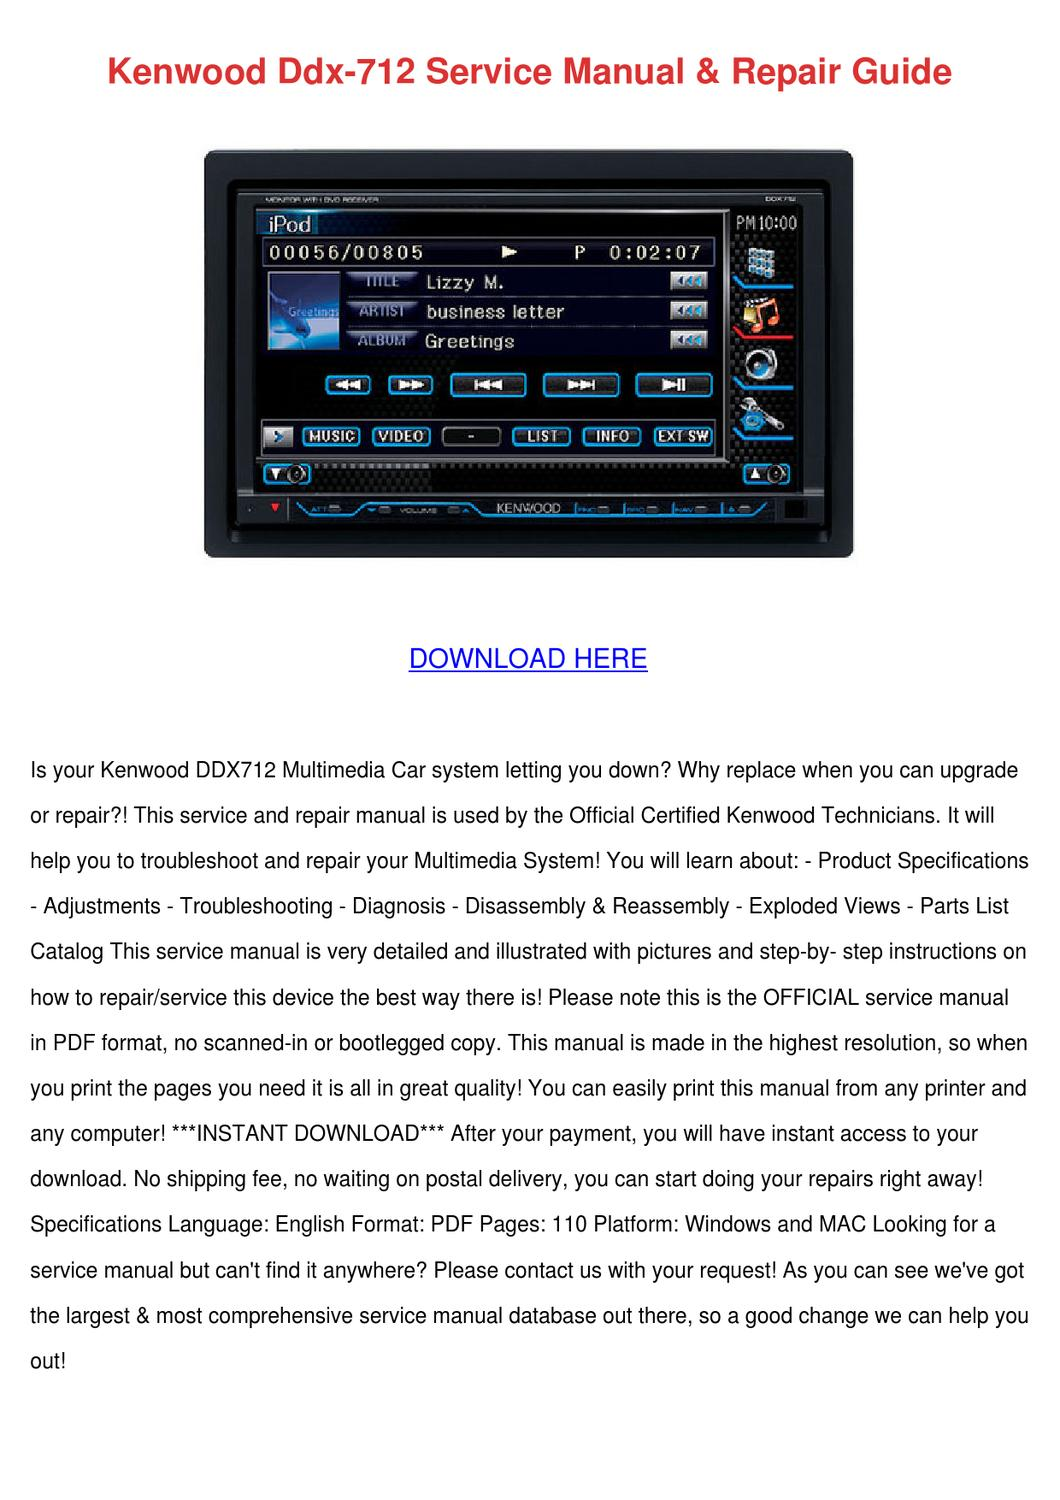 Kenwood Ddx712 Wiring Diagram Library Ddx 712 Service Manual Repair Guide By Sherice Lasala Issuu Dnx7140 Detailed